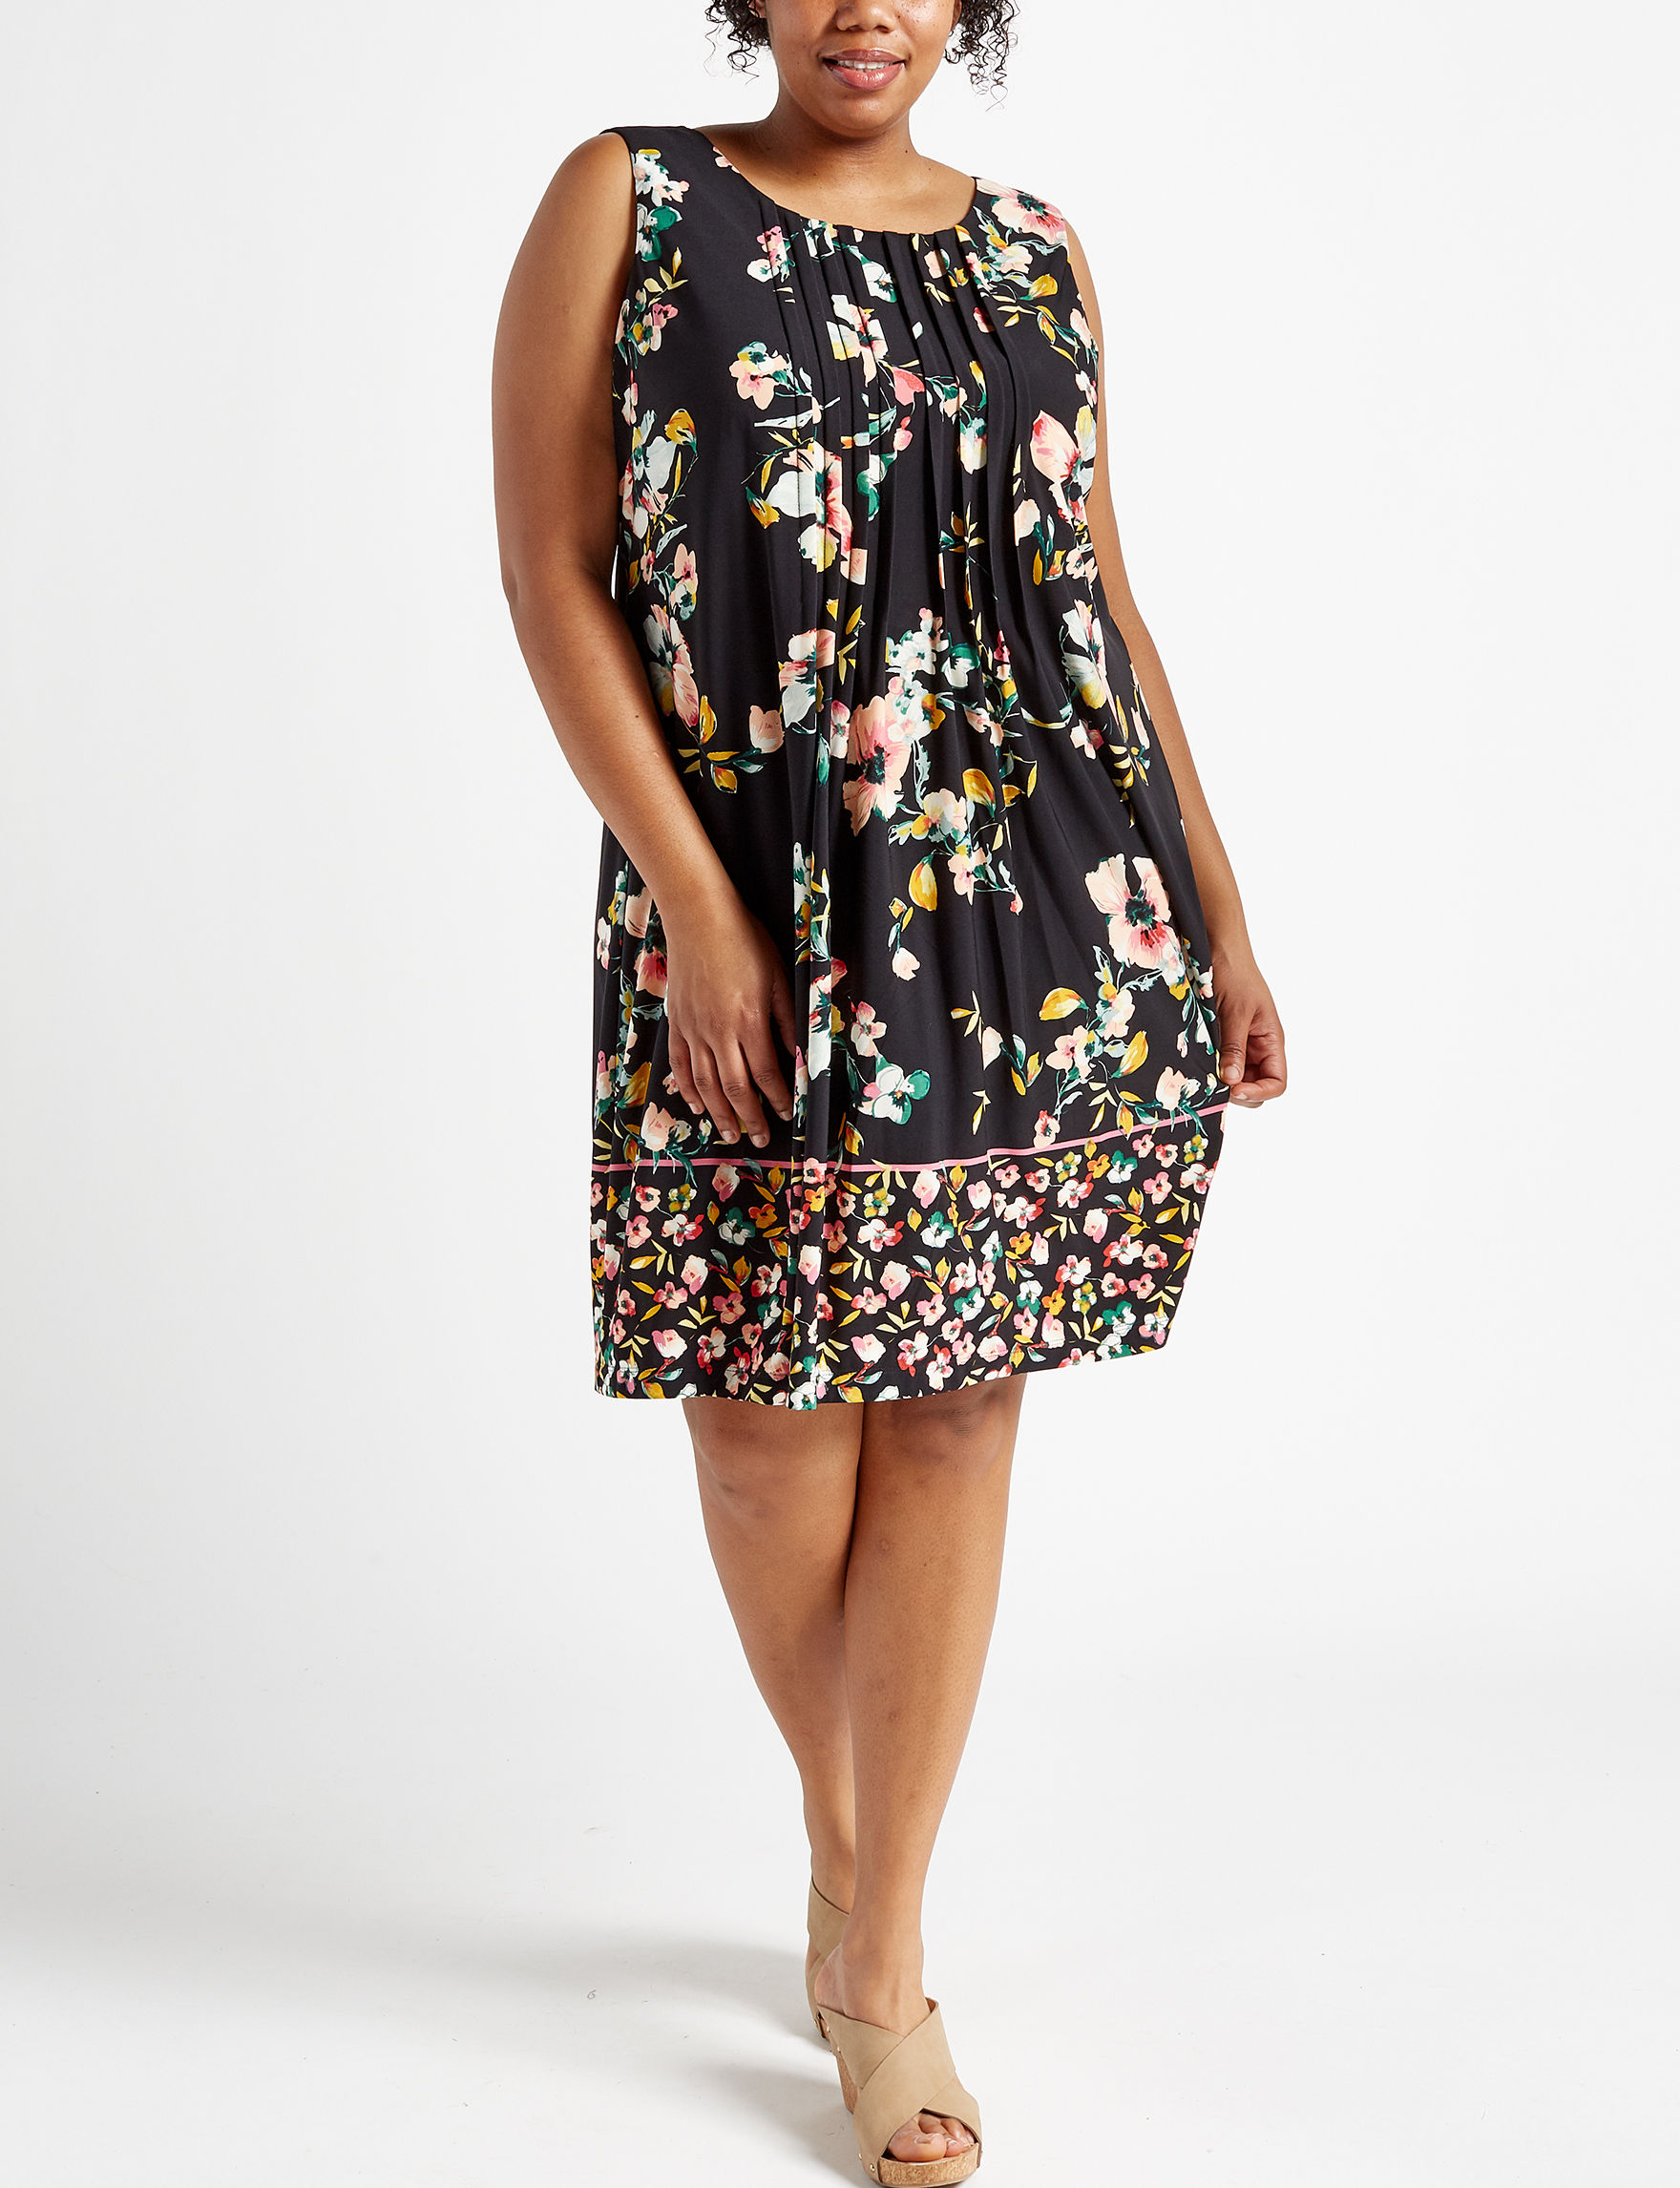 Perceptions Black Multi Everyday & Casual Shift Dresses